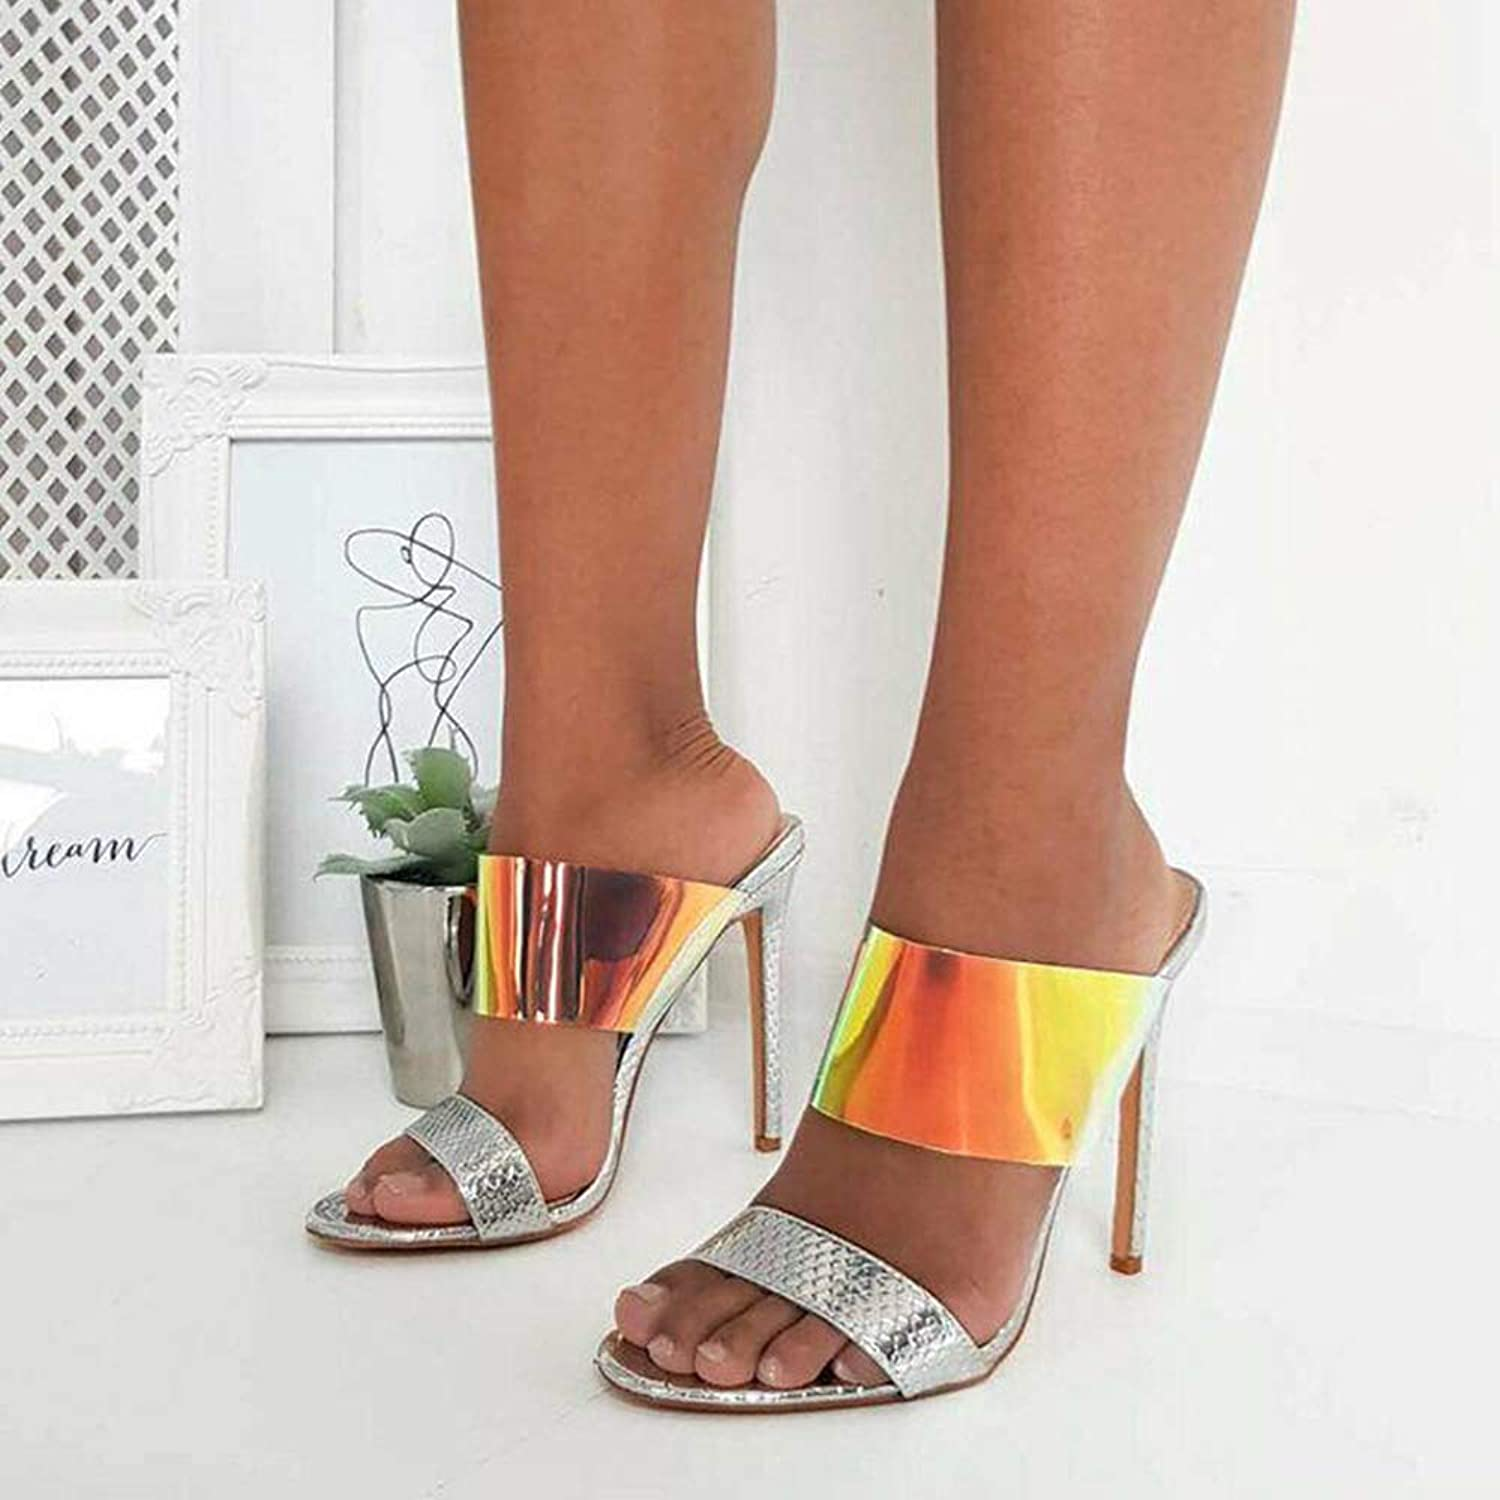 Womens Fashion Sexy Pointed Open Toe Stiletto High Heeled Sandals Slippers Mules Slide Backless Pumps shoes,Silver,6MUS